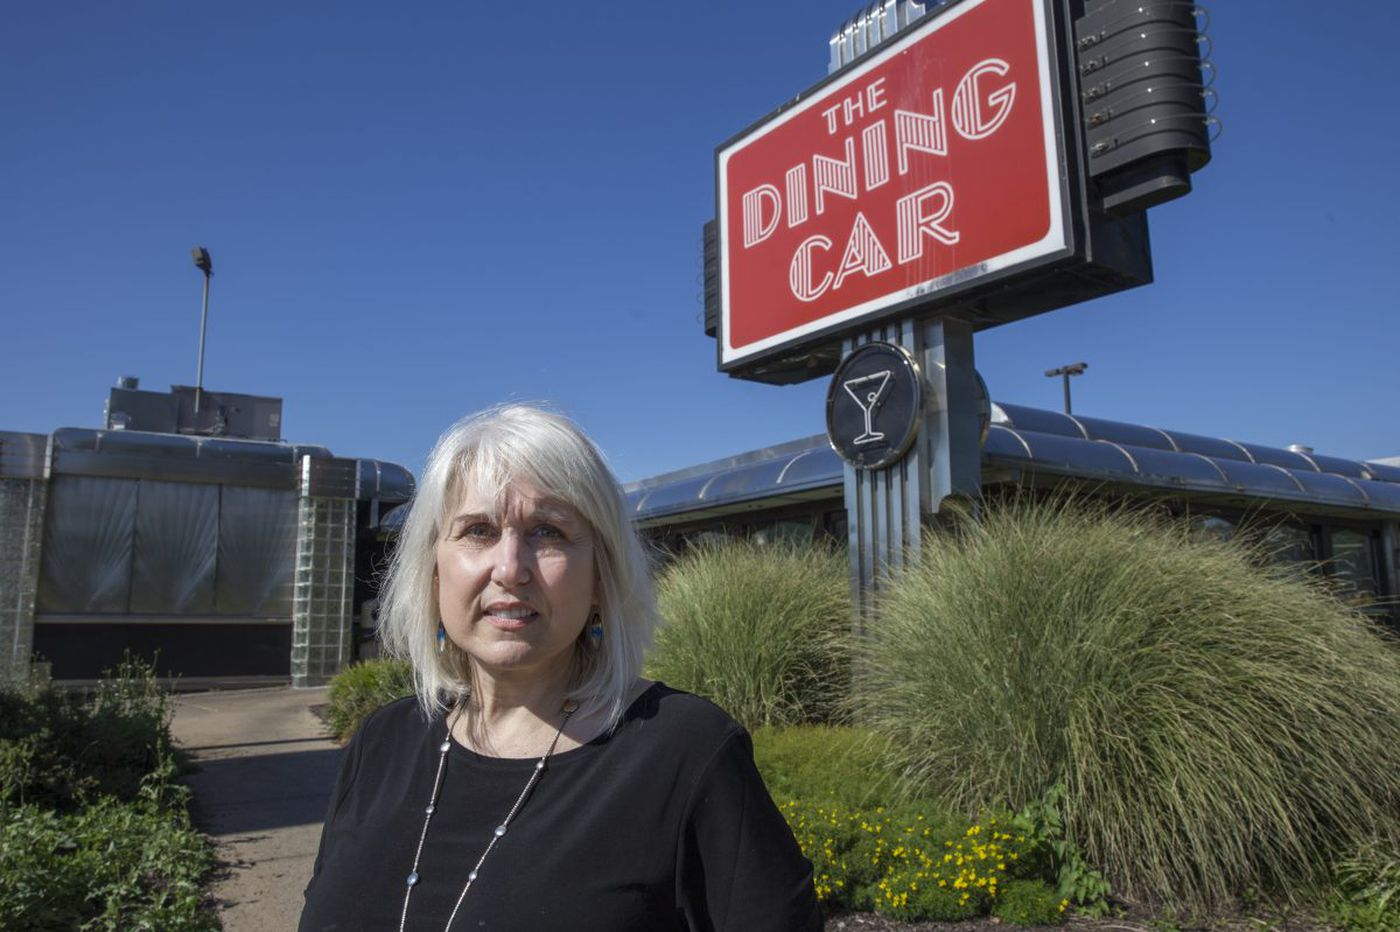 Dining Car to bring back 24-hour service